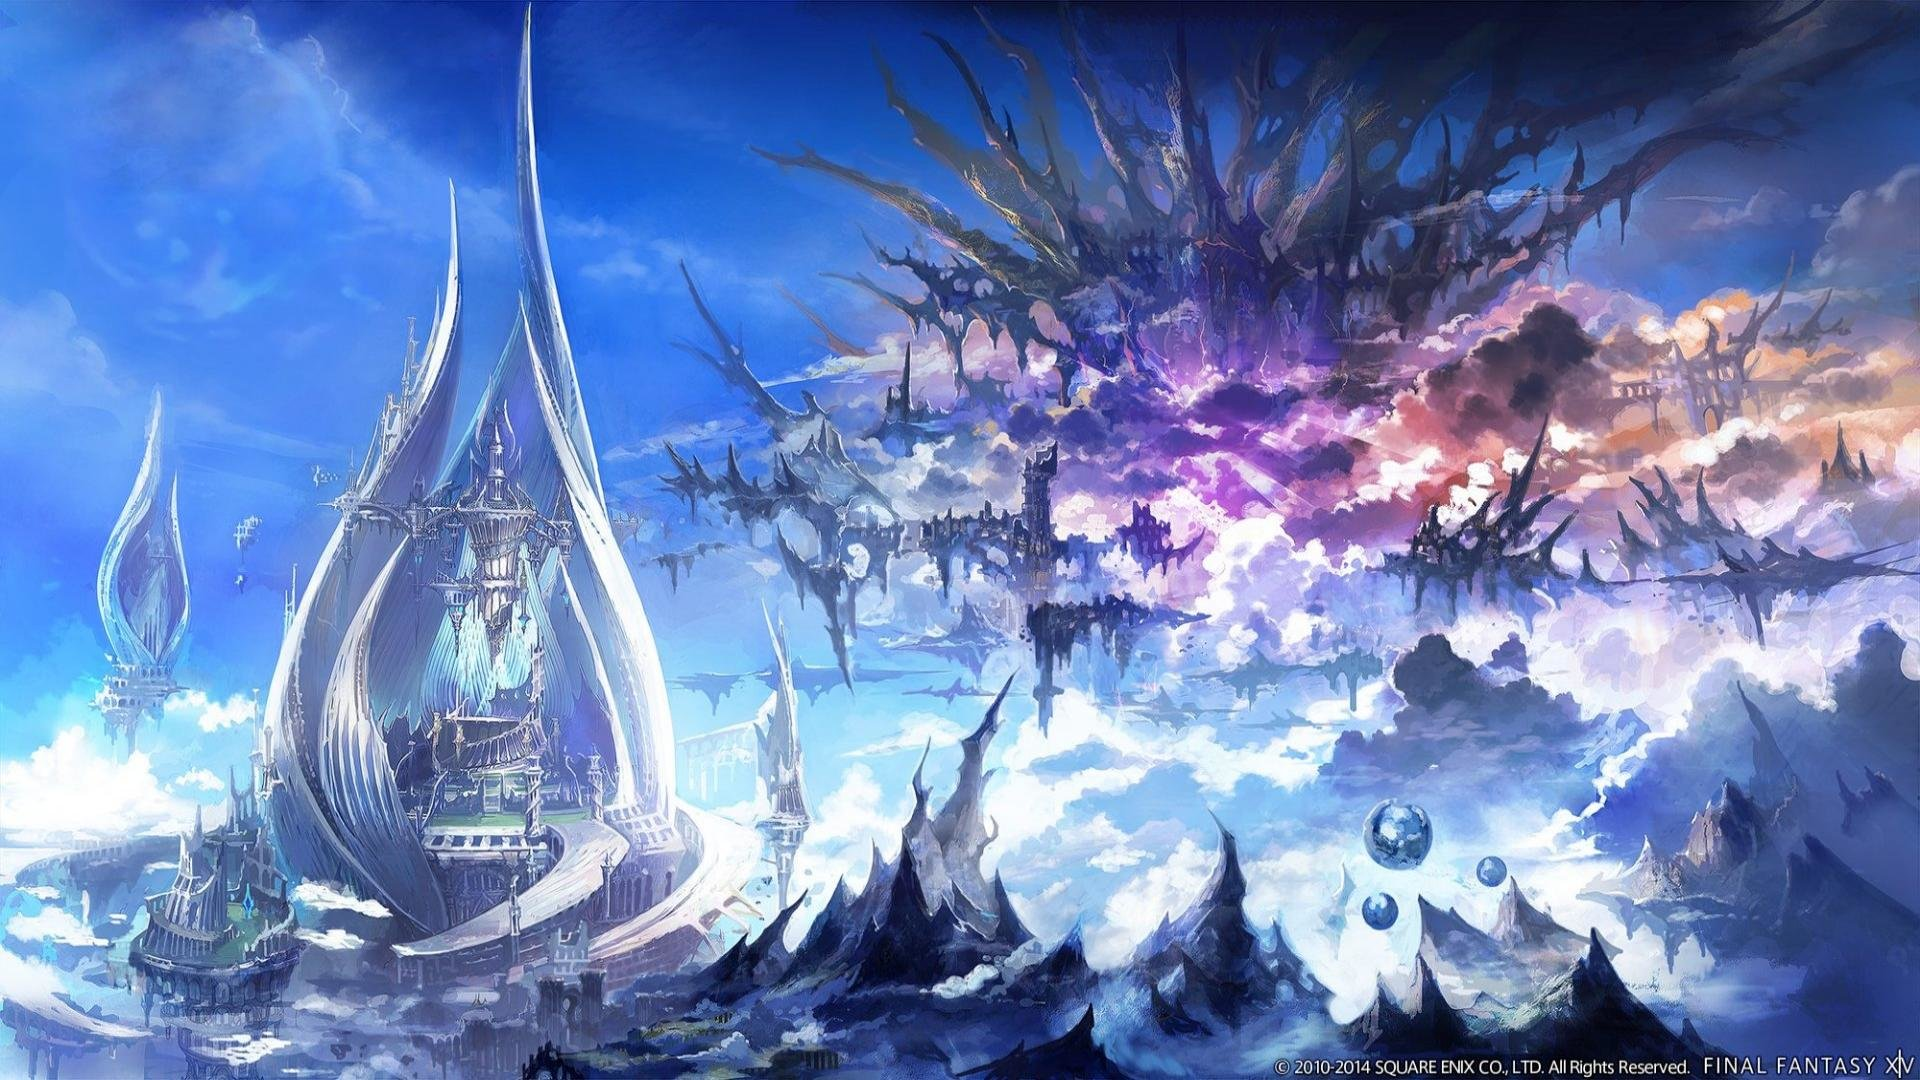 Final Fantasy Xiv Ff14 A Realm Reborn Wallpapers 1920x1080 Full